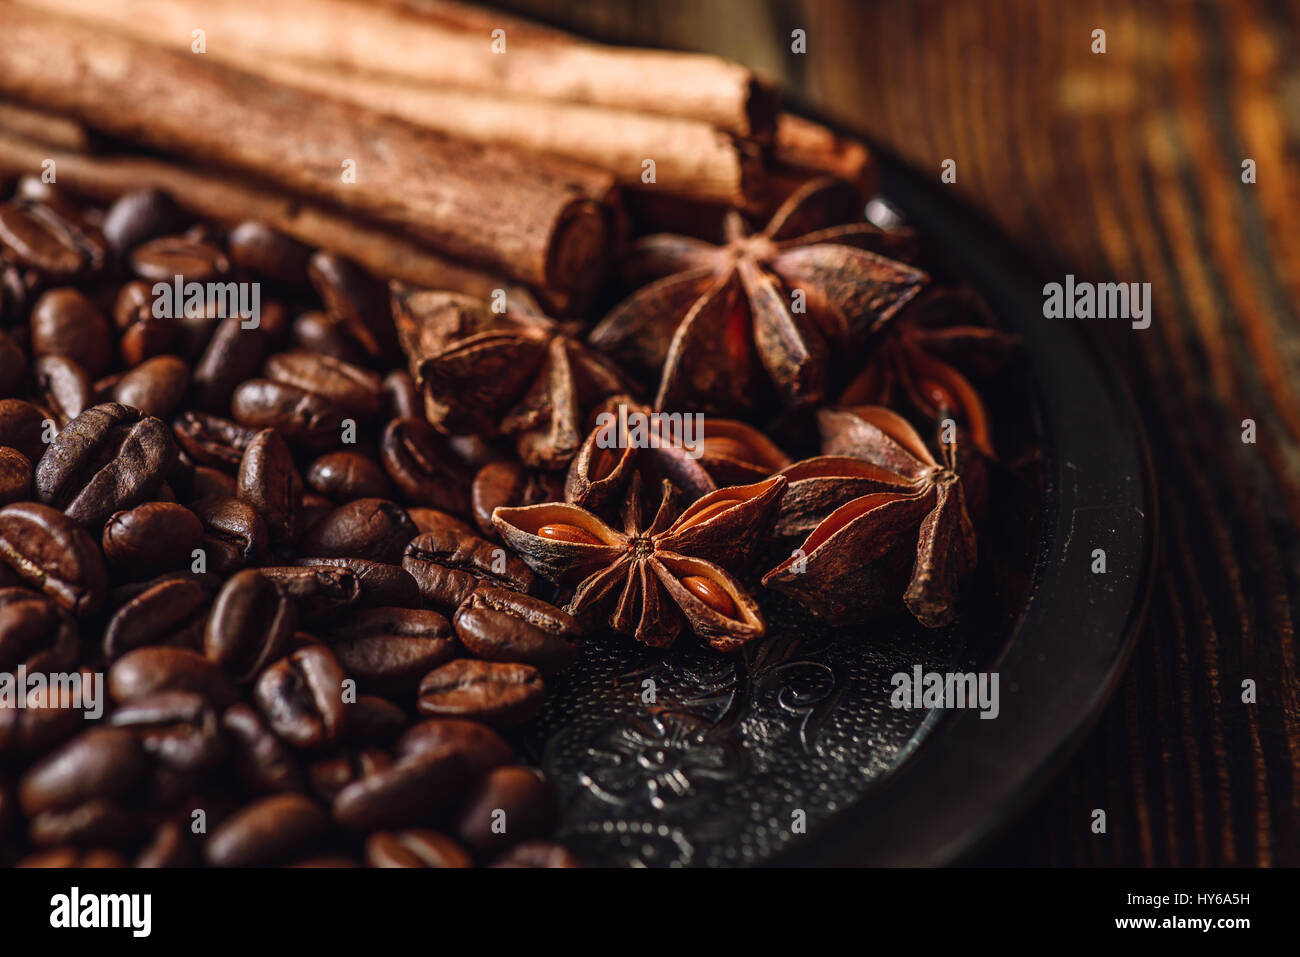 Coffee Beans with Cinnamon and Star Anise on Metal Plate. - Stock Image